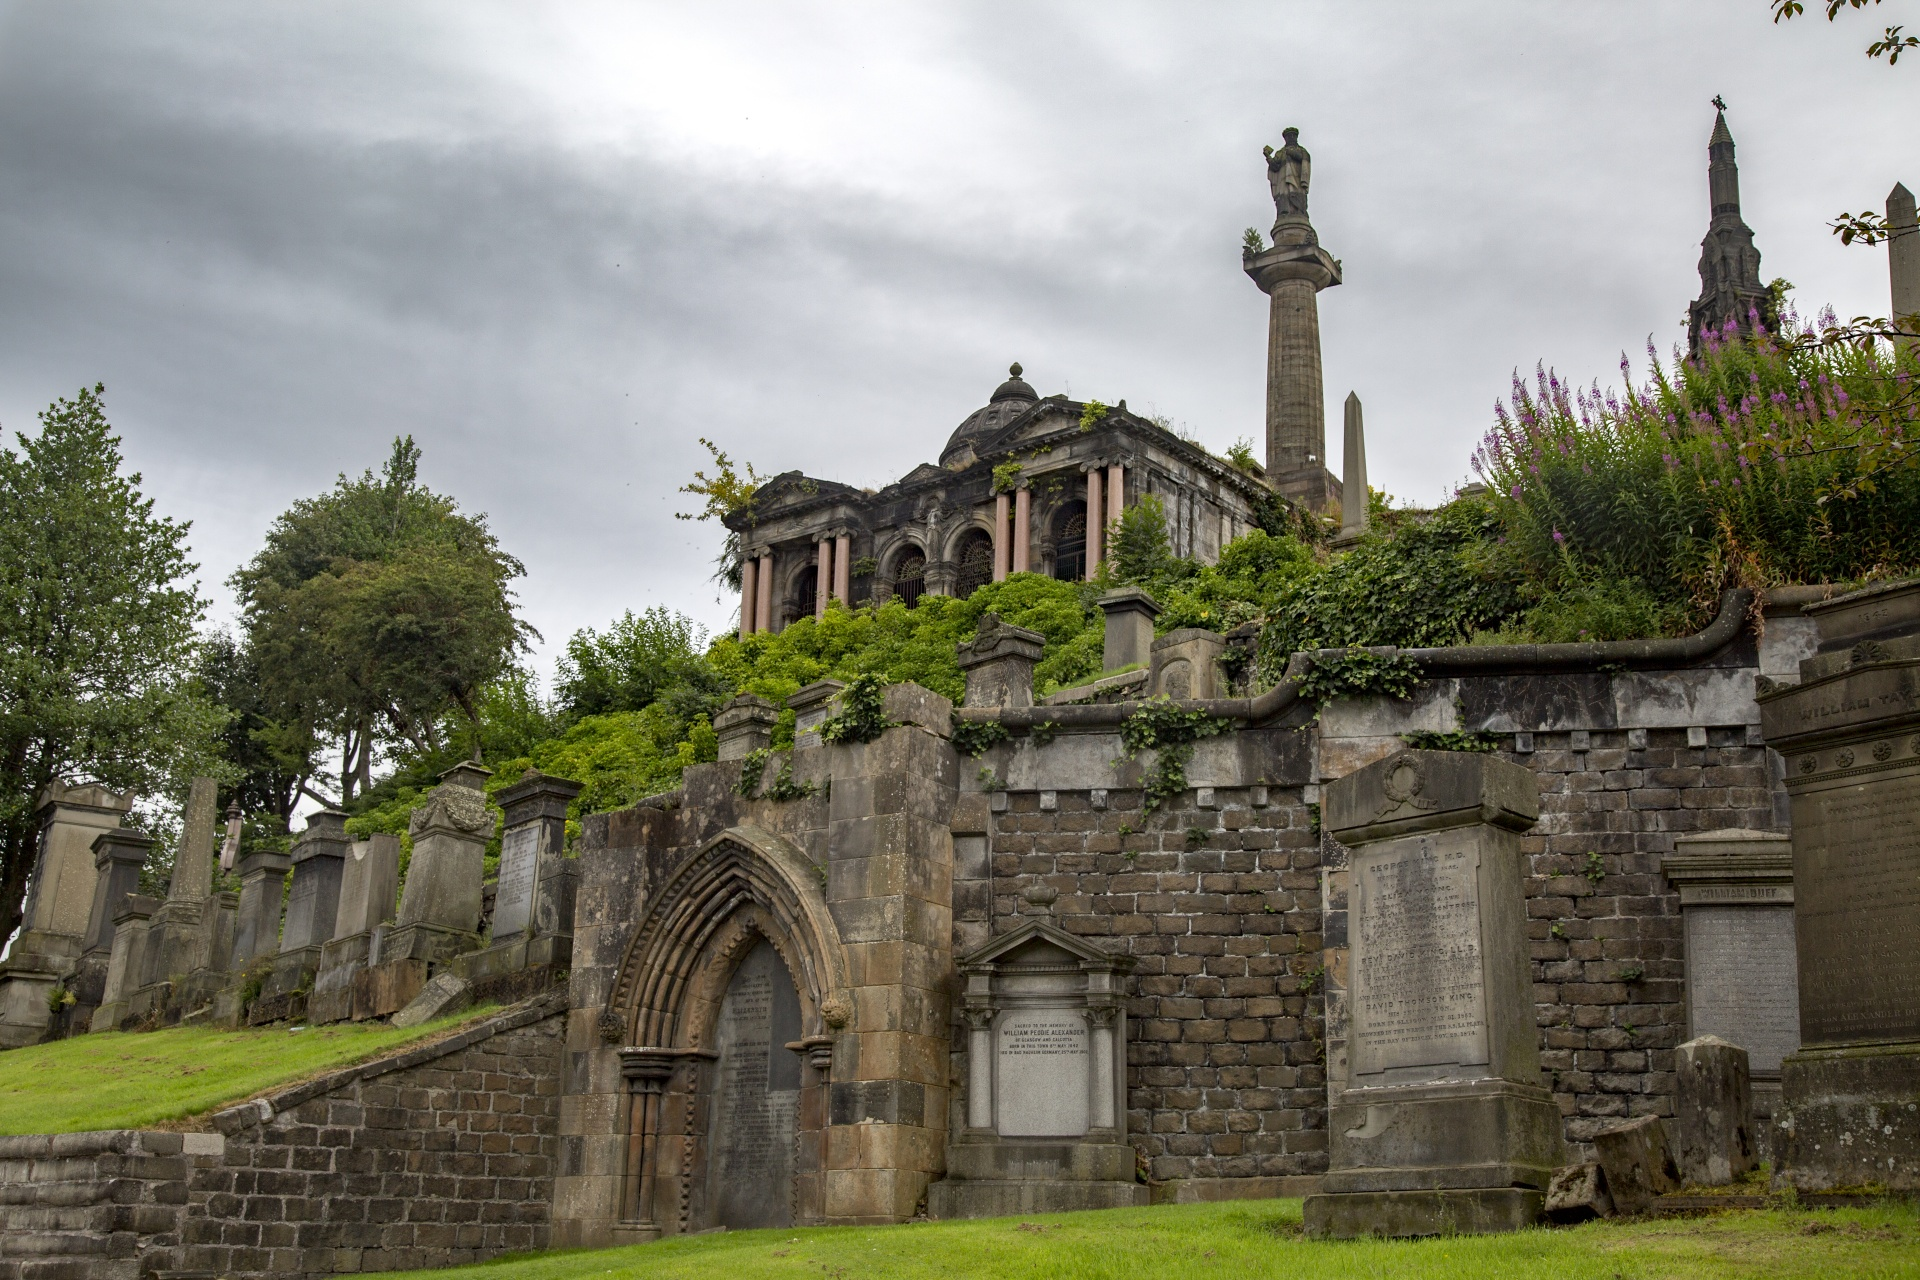 The Glasgow Necropolis - photo by George Hodan under CC0 Public Domain